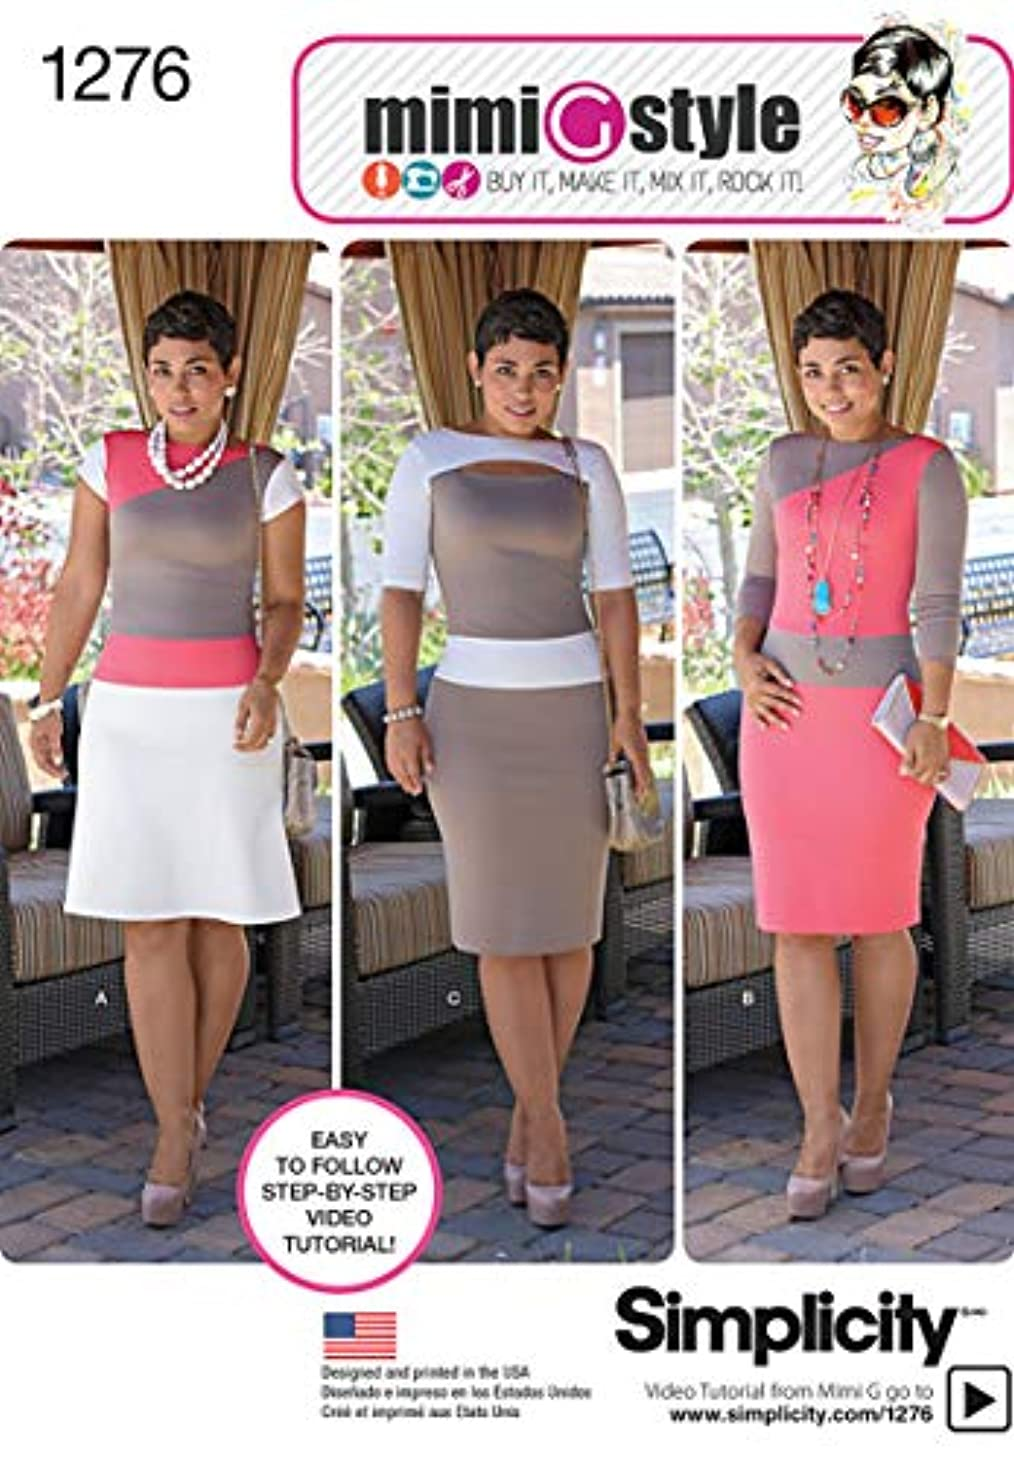 SIMPLICITY US1276H5 Misses' and Miss Petite Knit Dress Sewing Template